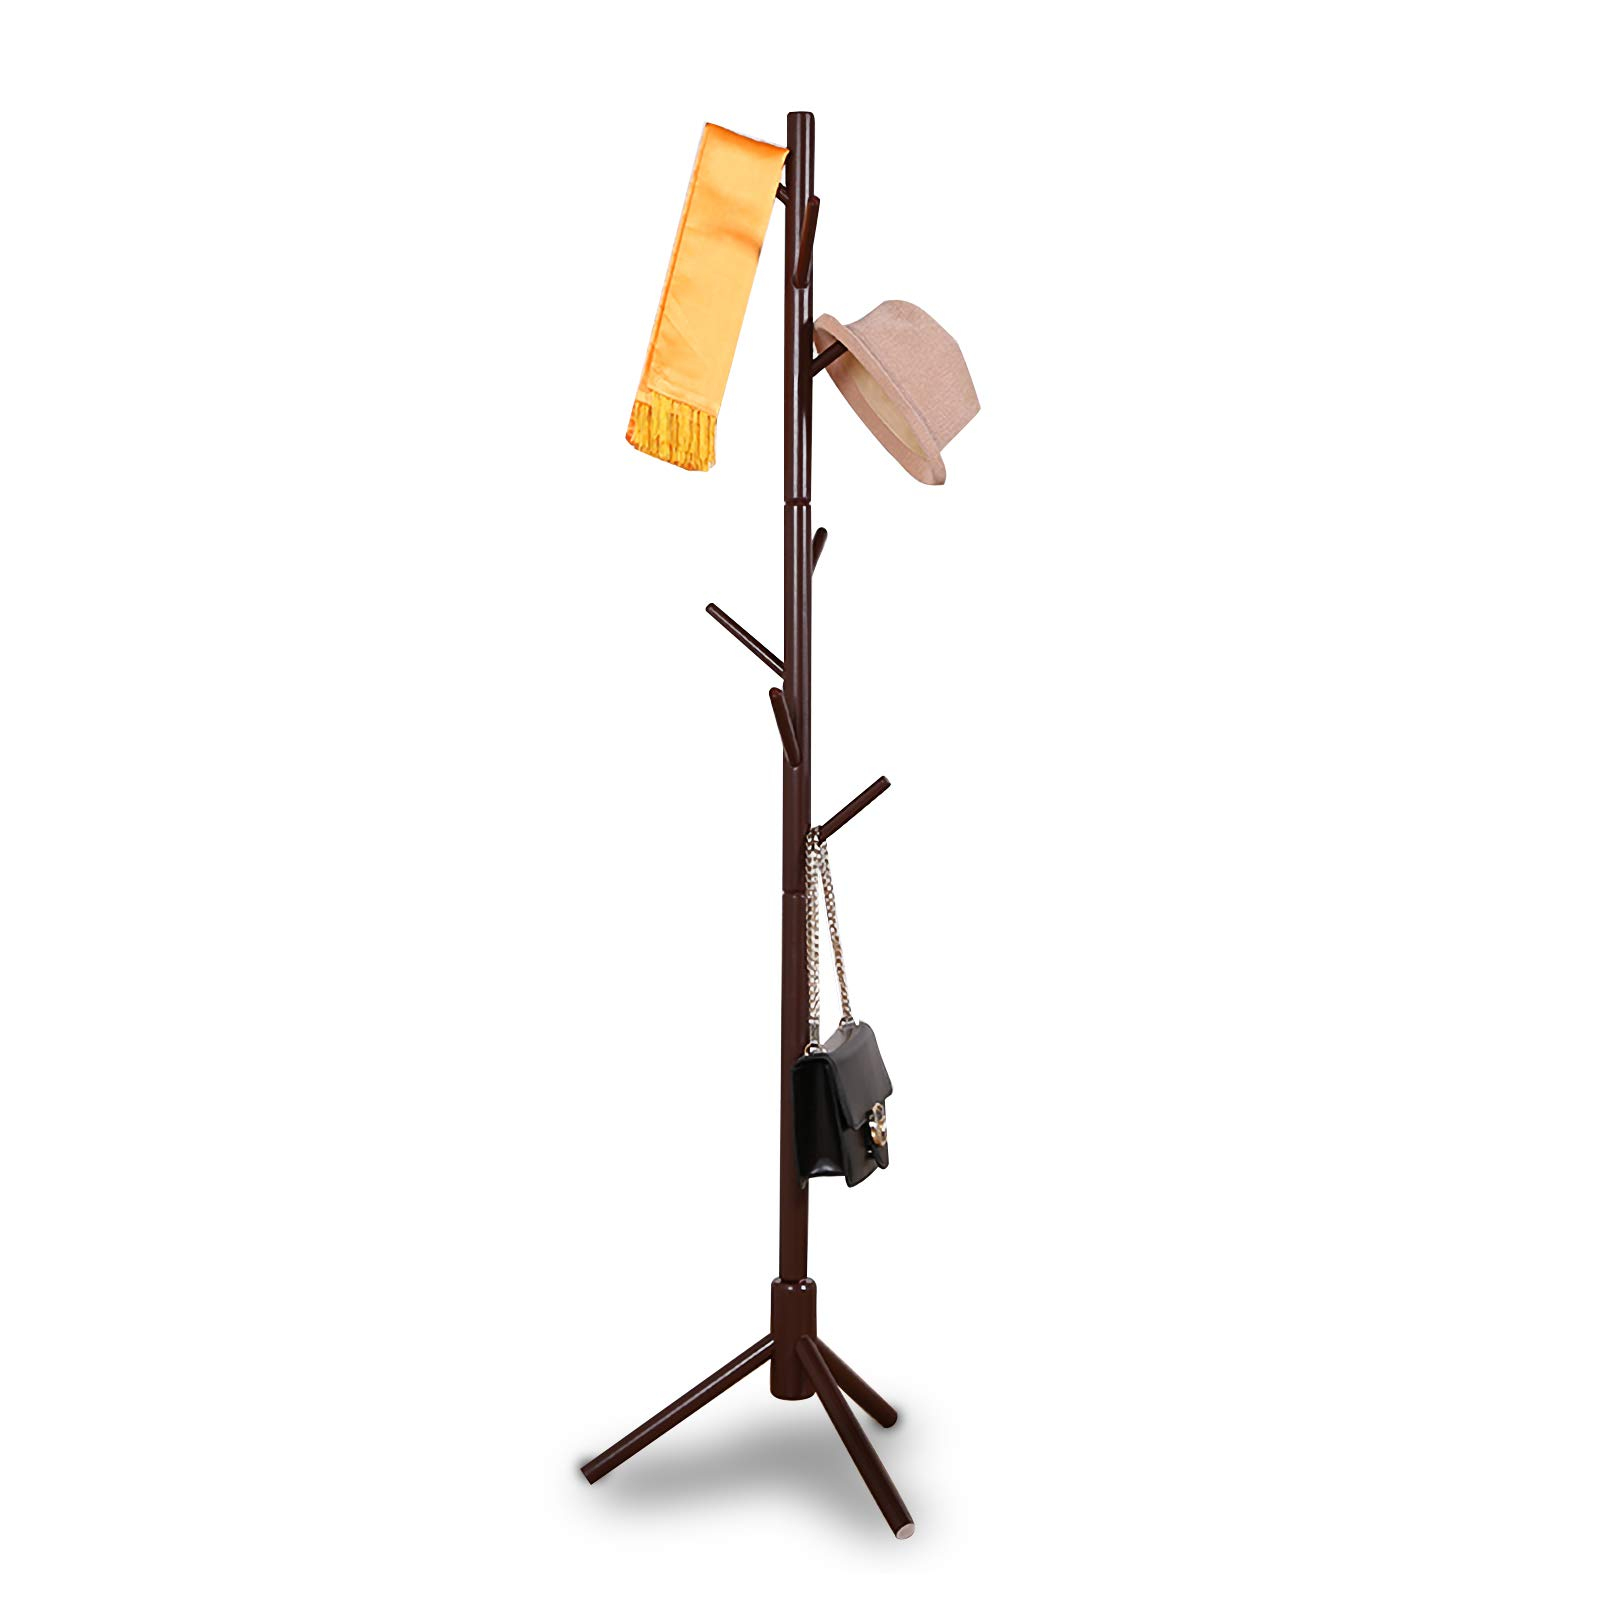 JOYBASE 8 hooks Wooden Coat Rack/Clothes Hanger Stand, for Coats, Hats, Scarves, Jacket and Handbags(Coffee) by JOYBASE (Image #1)